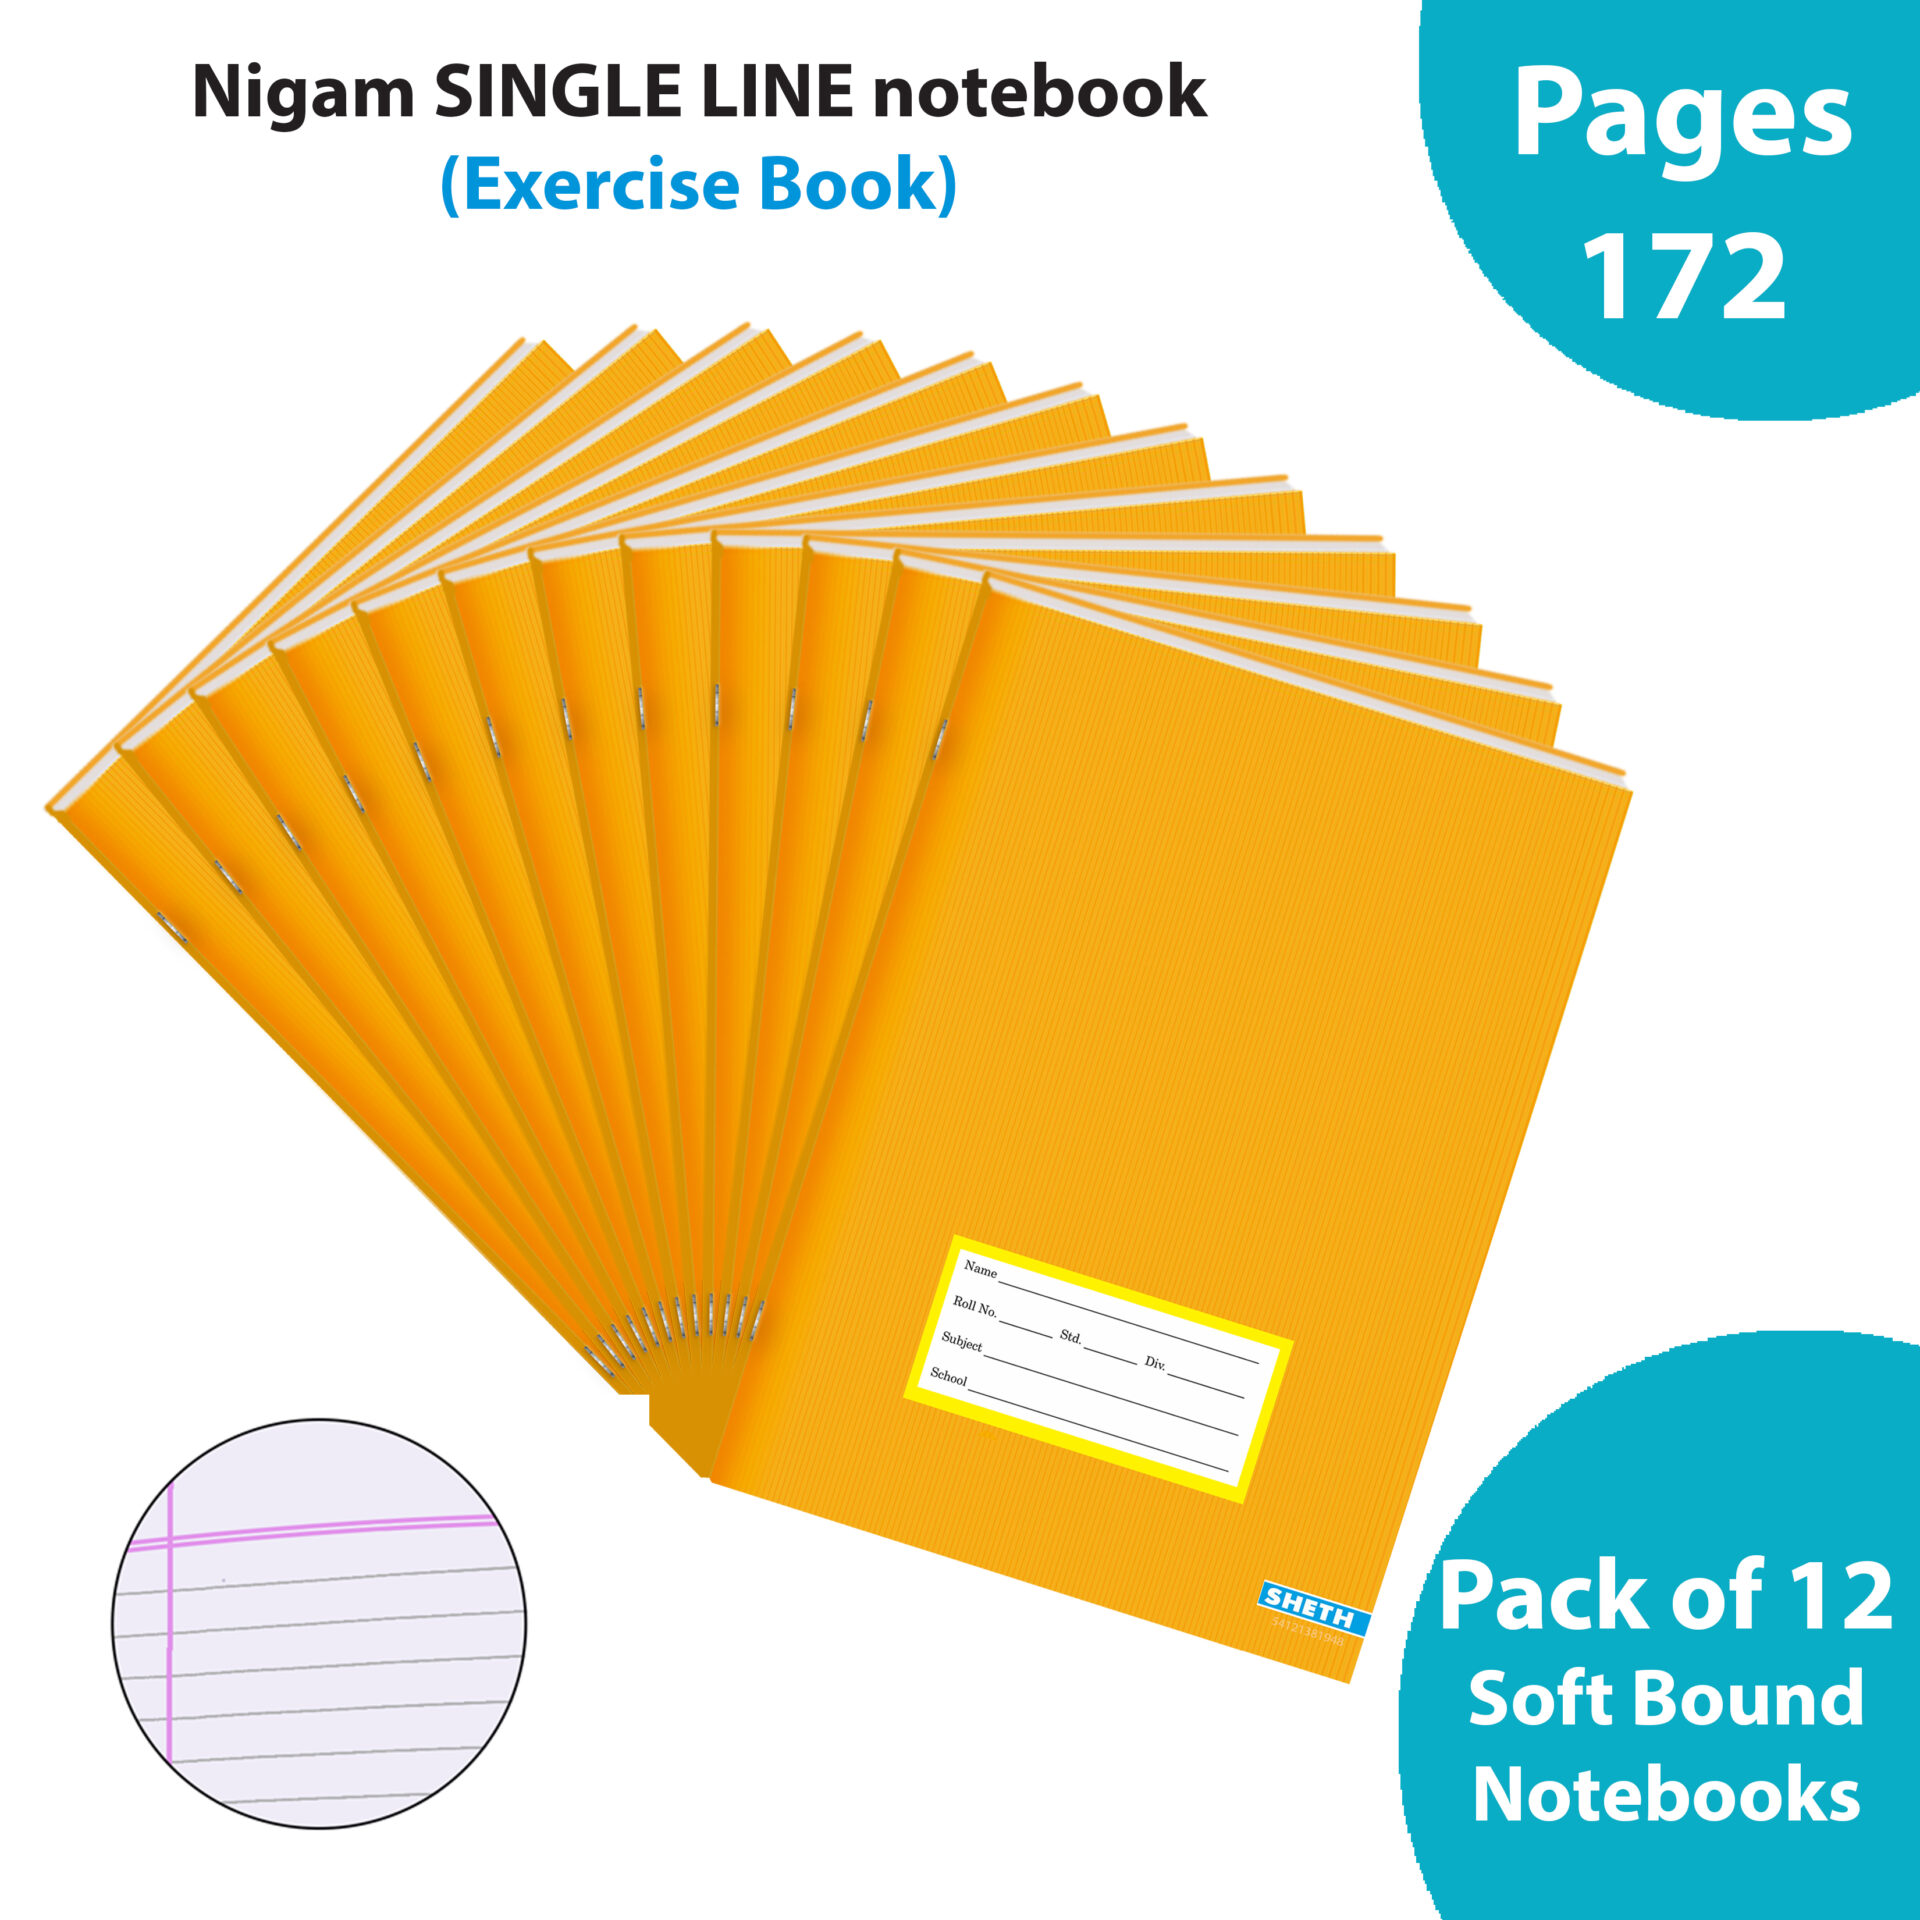 Nigam Single Line A5 Note Book 172 Pages Soft Bound Set of 12 1